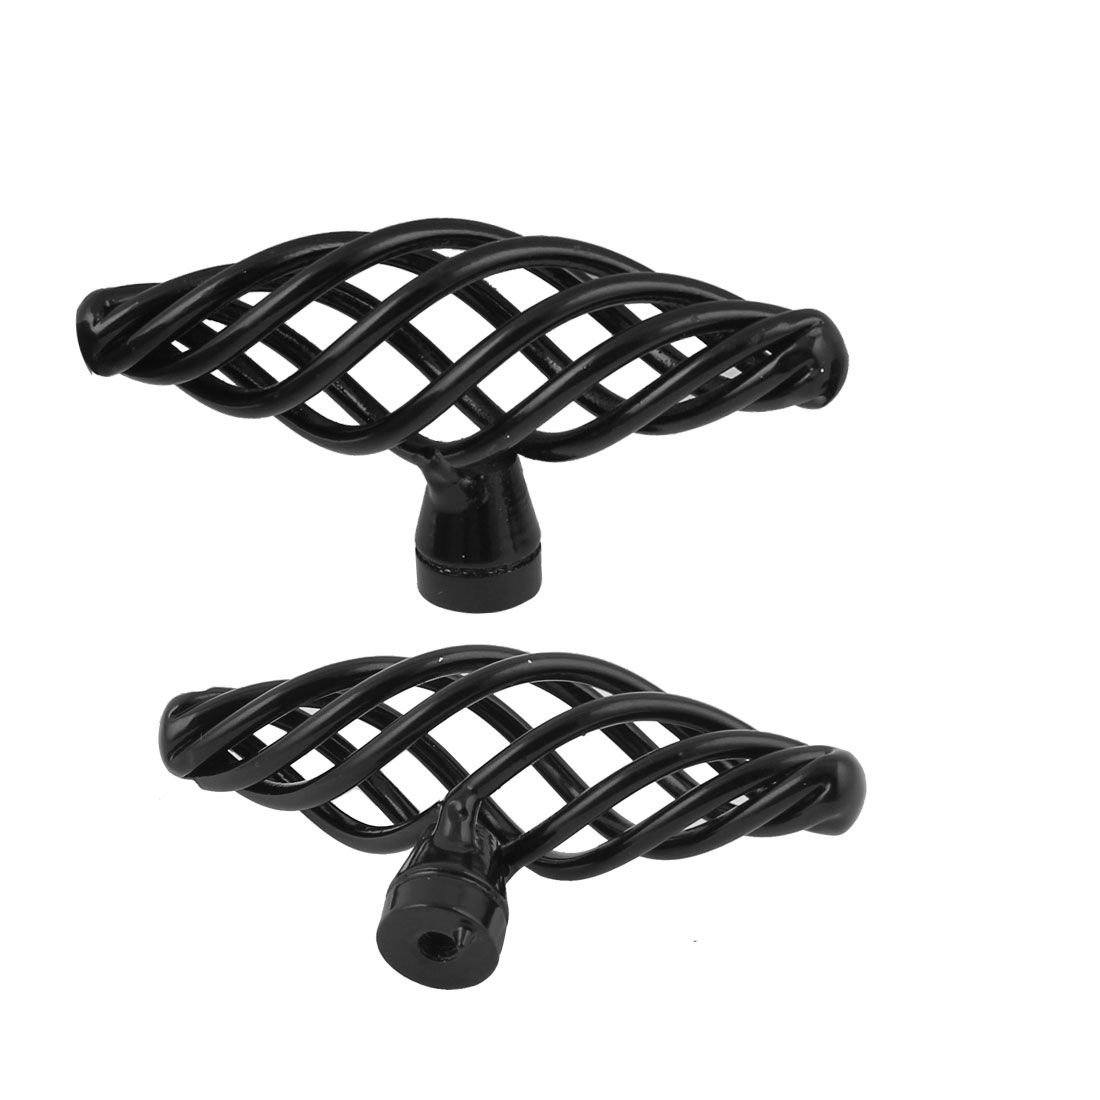 2 Pcs Black T-Handle Twist Birdcage Knobs Drawer Cabinet Cupboard Pull Handles